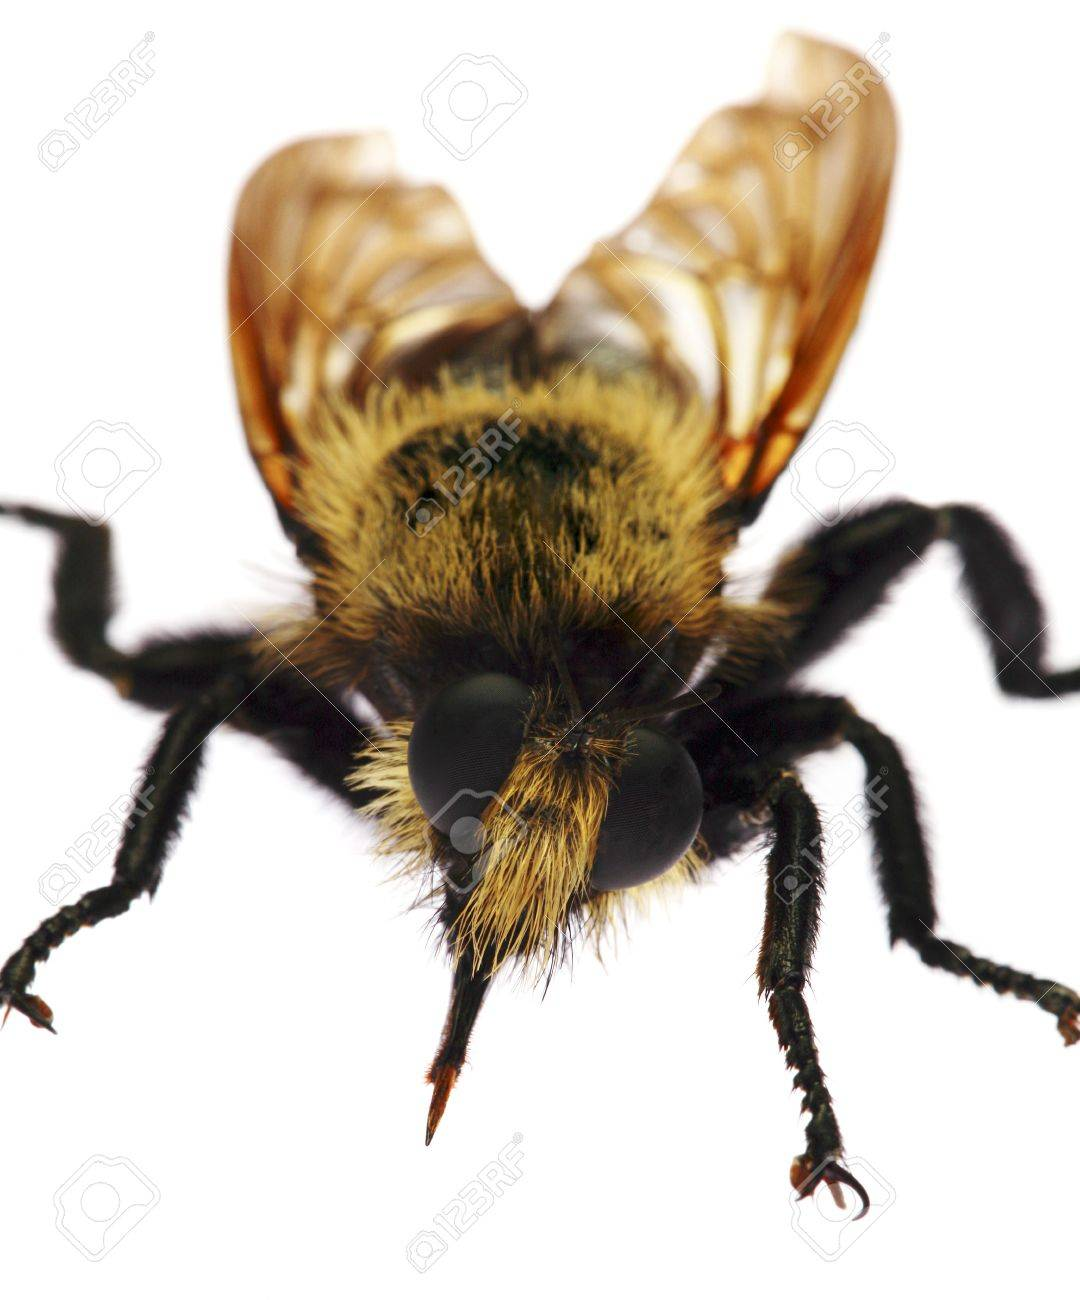 bumblebee front view stock photo picture and royalty free image